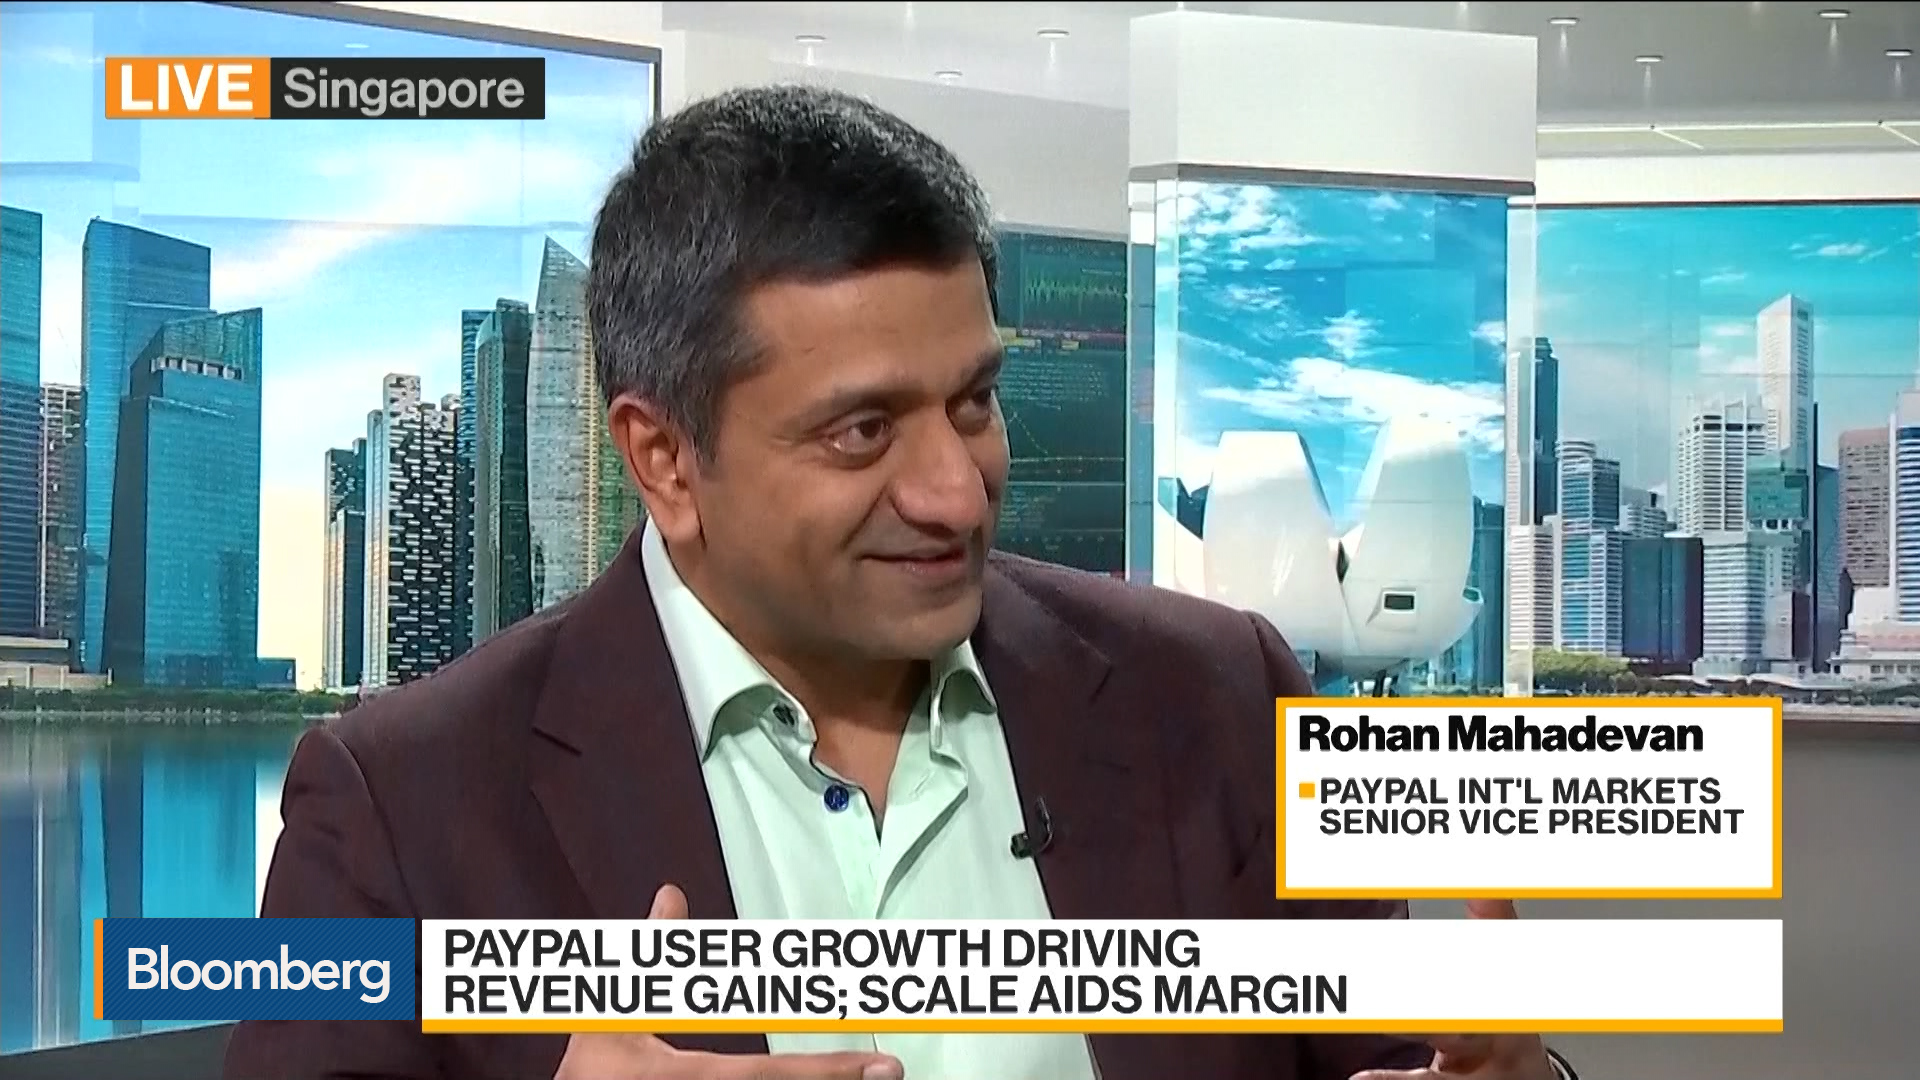 PayPal's Mahadevan Says Most Growth Coming From Asia